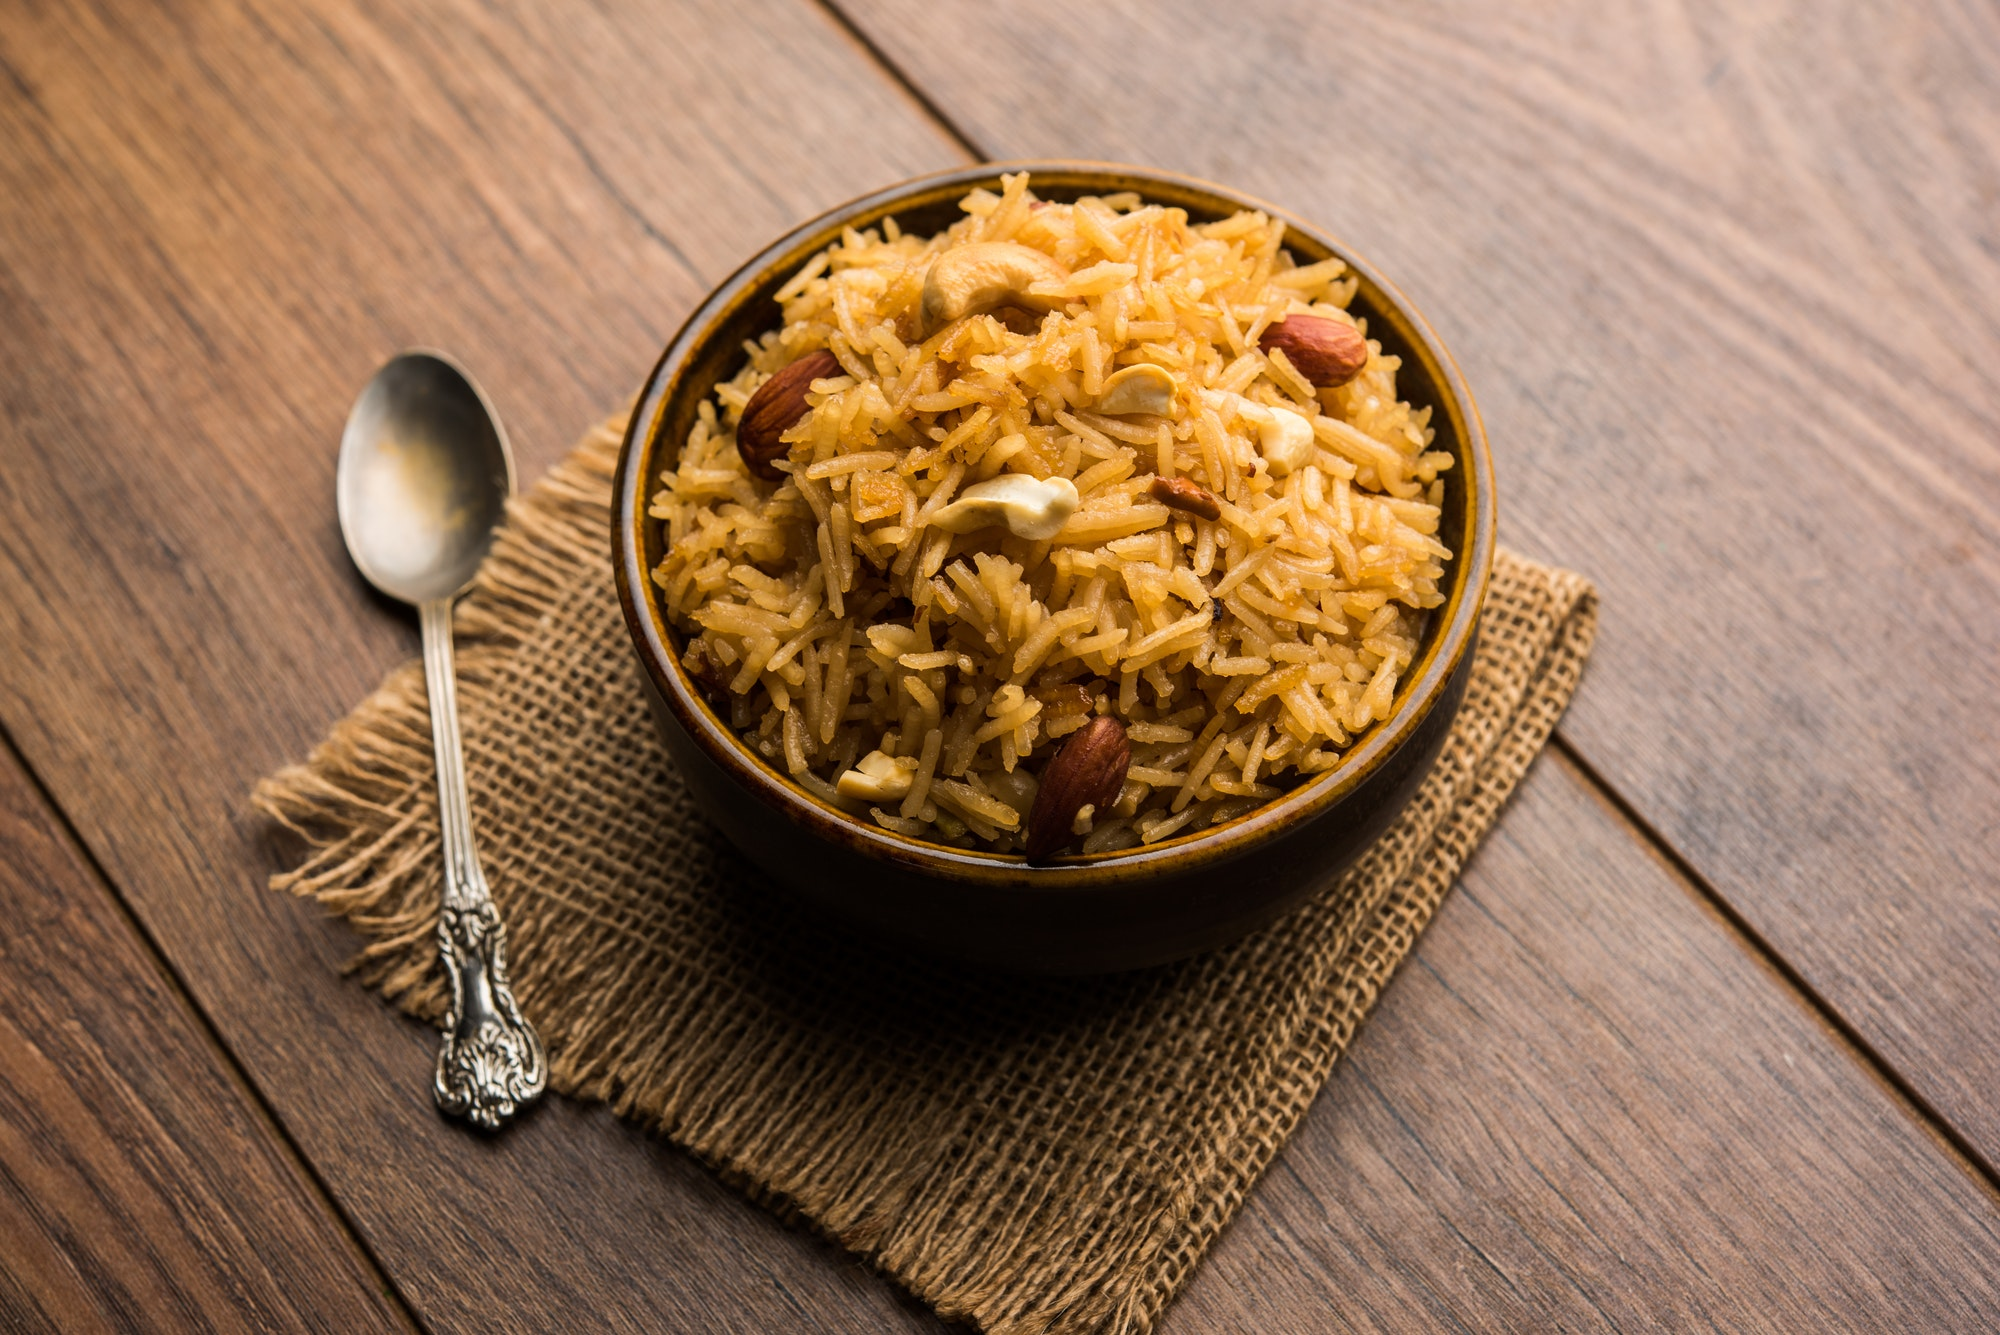 Traditional Jaggery Rice or Gur wale chawal is an Indian dessert recipe